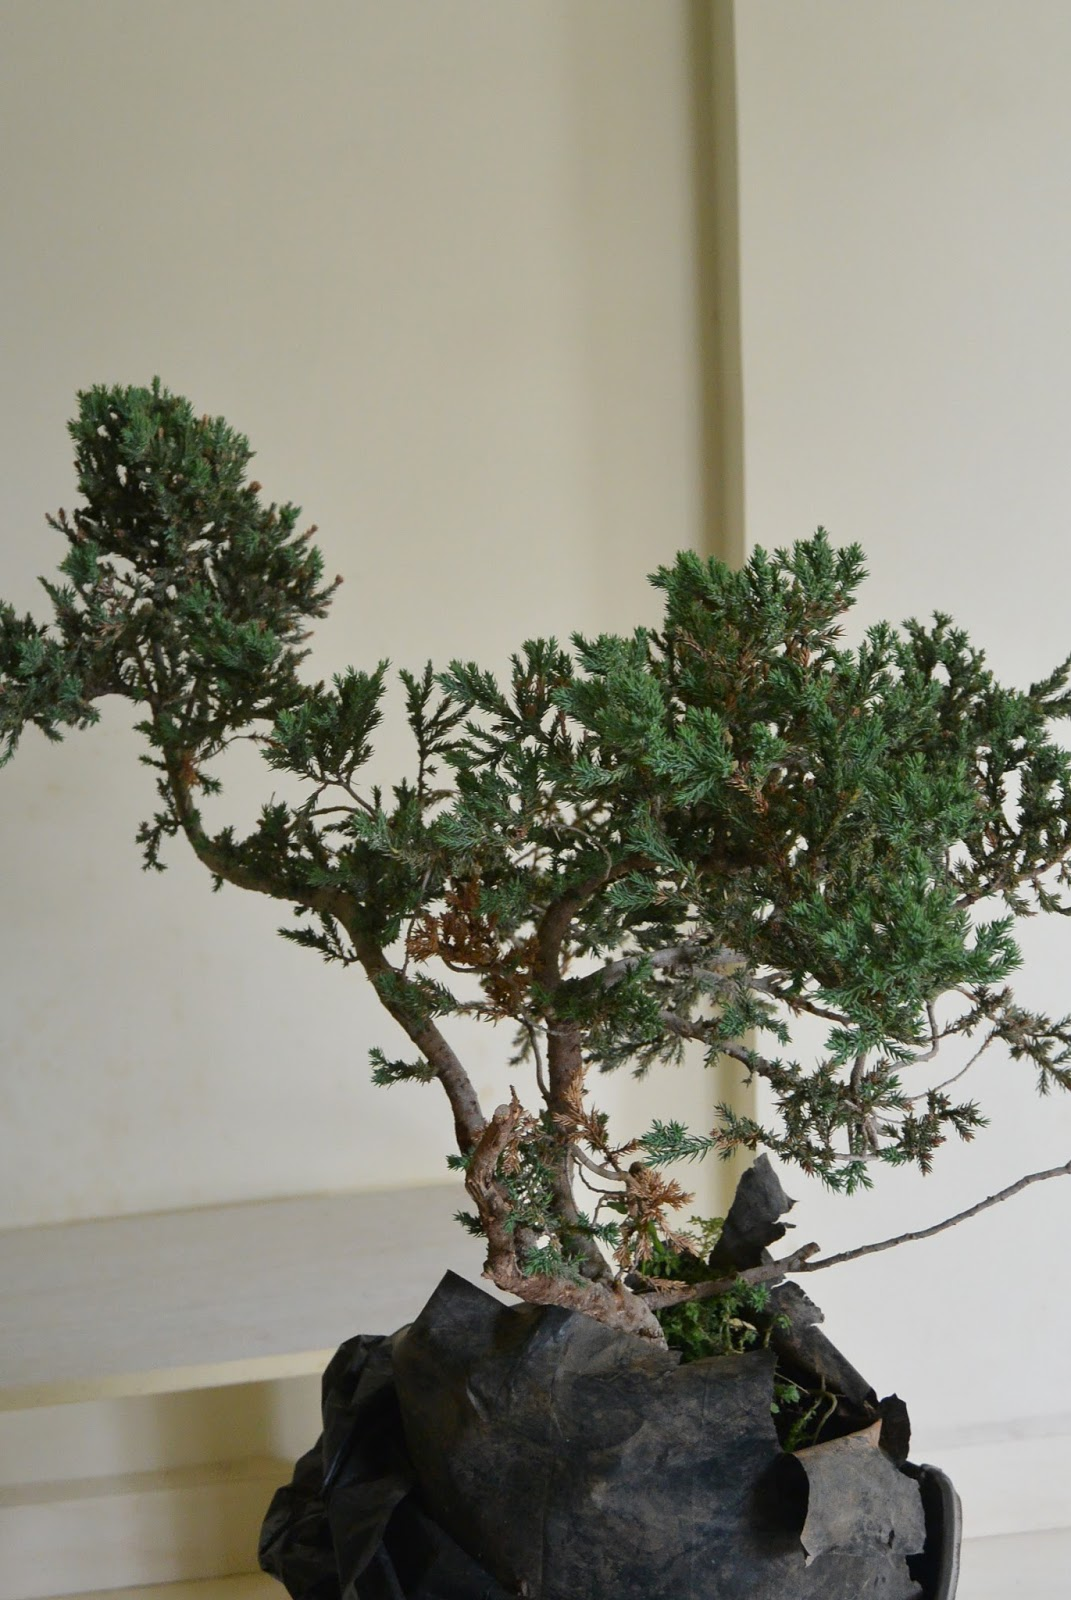 Kapilaascreations Bonsai Wiring Cypress Is Started After Clearing The Main Trunk